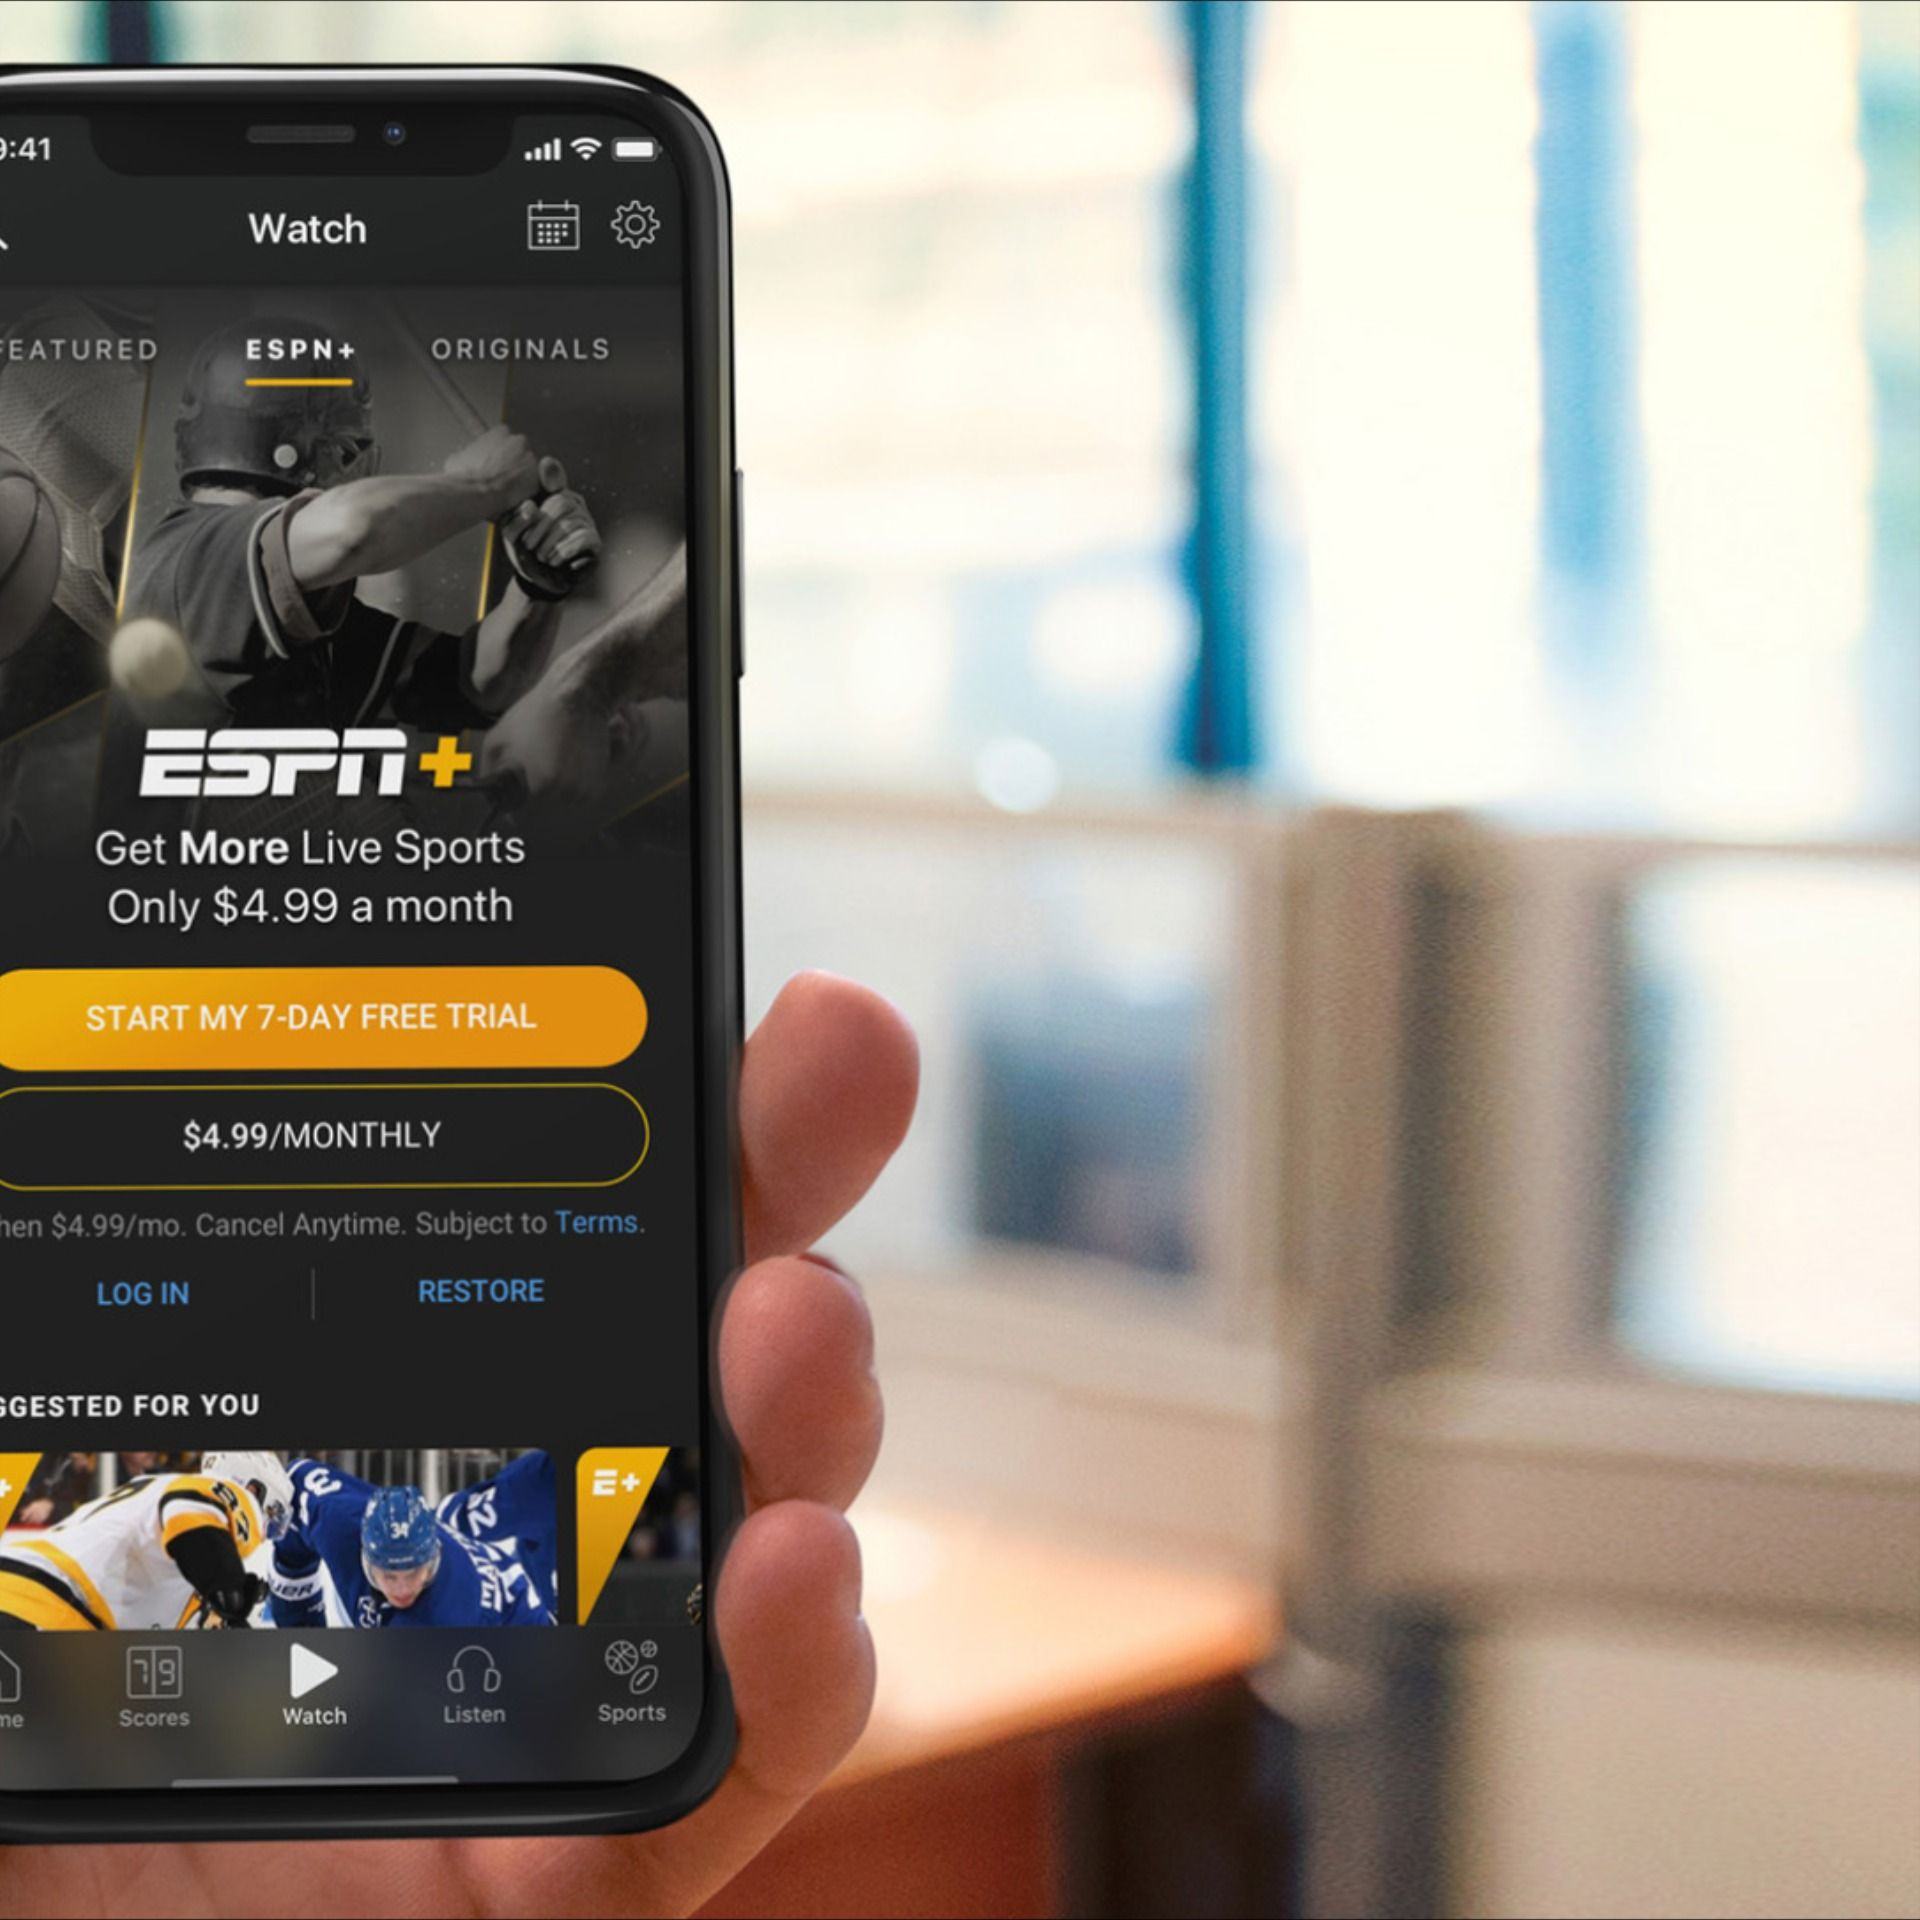 Espn everything you need to know espn cable channels